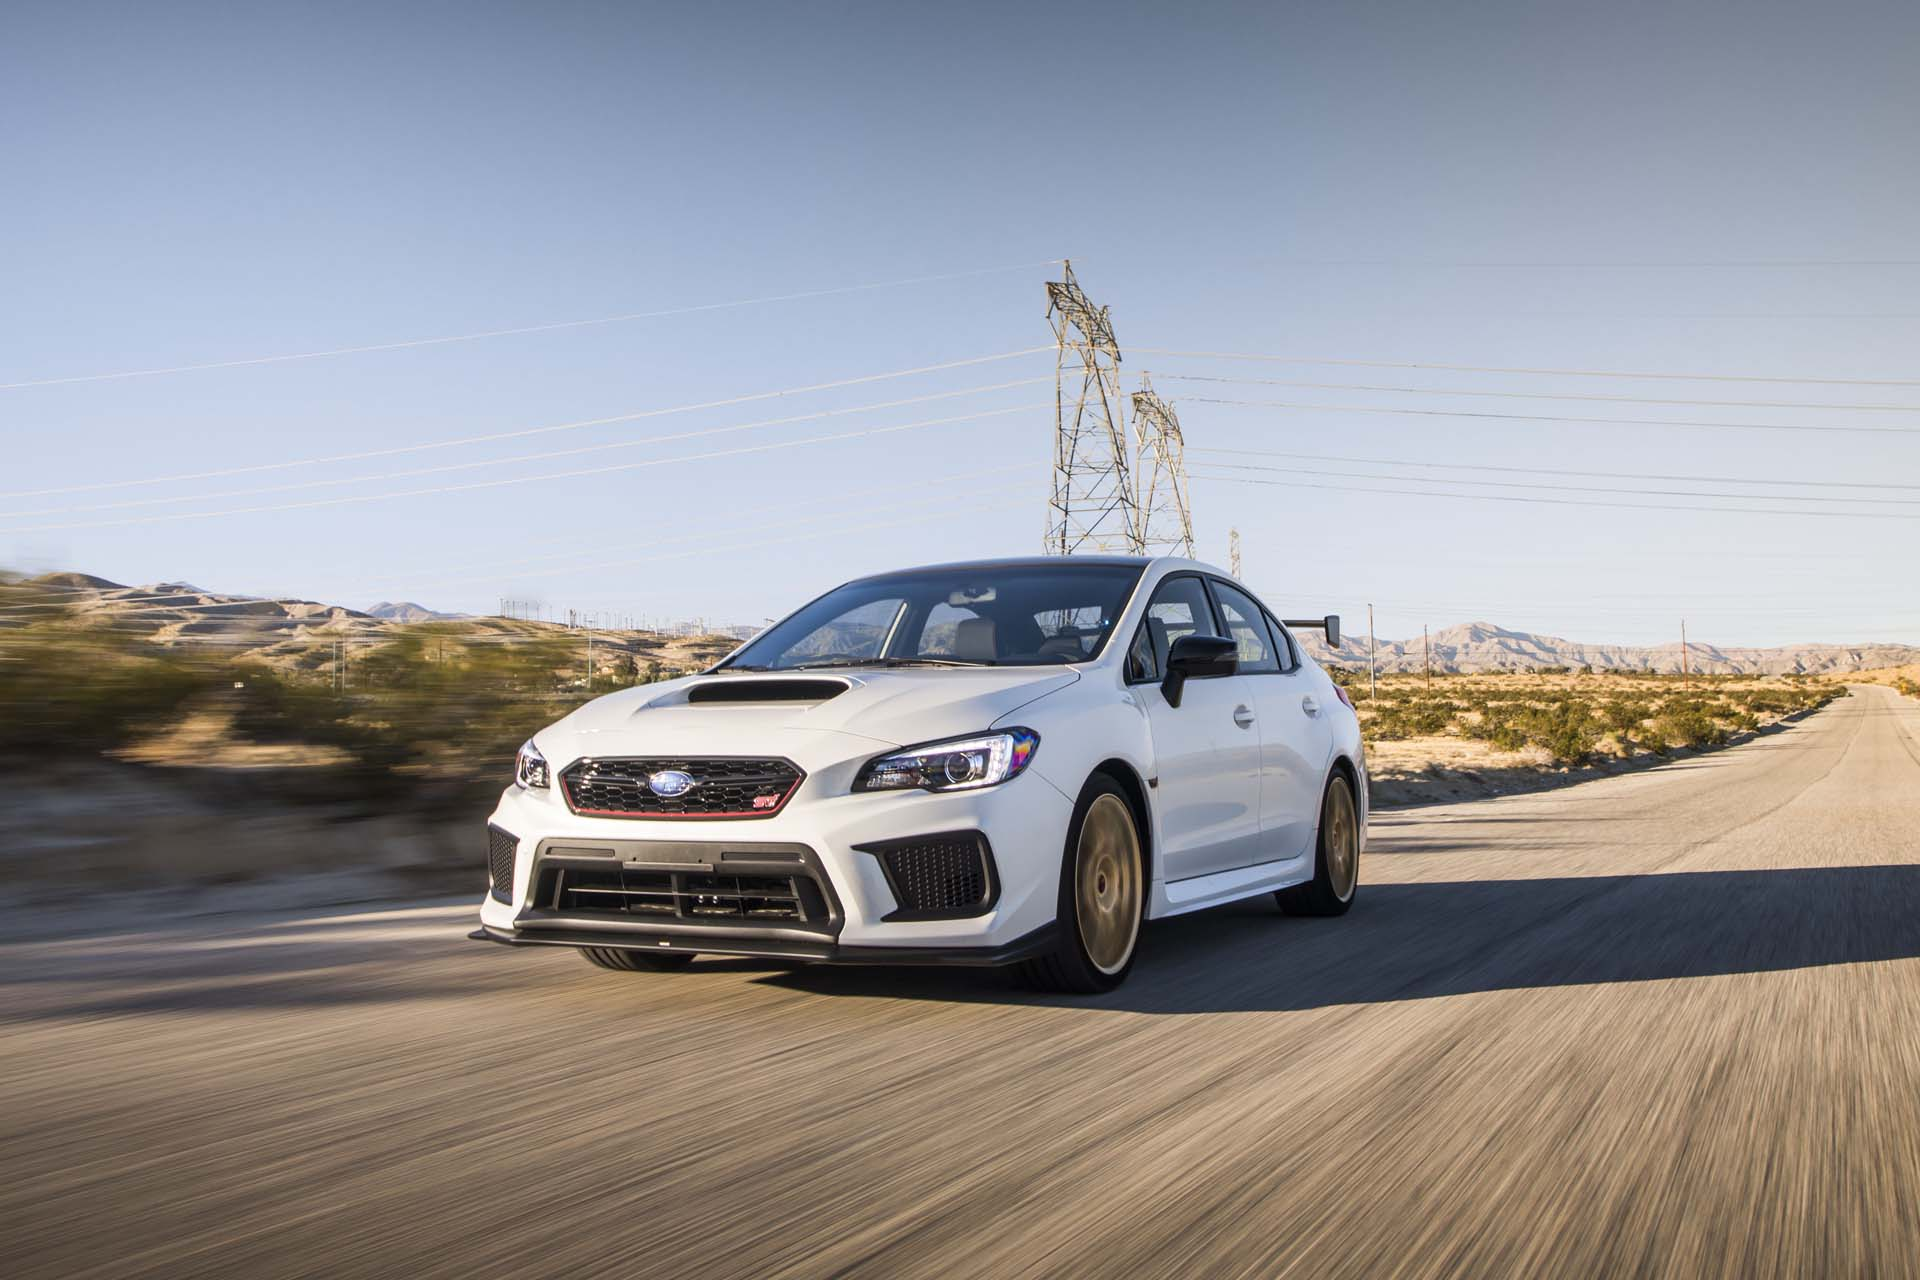 2018 subaru wrx sti type ra first drive review a lighter subaru impreza workshop manual pdf subaru impreza service manual 2008